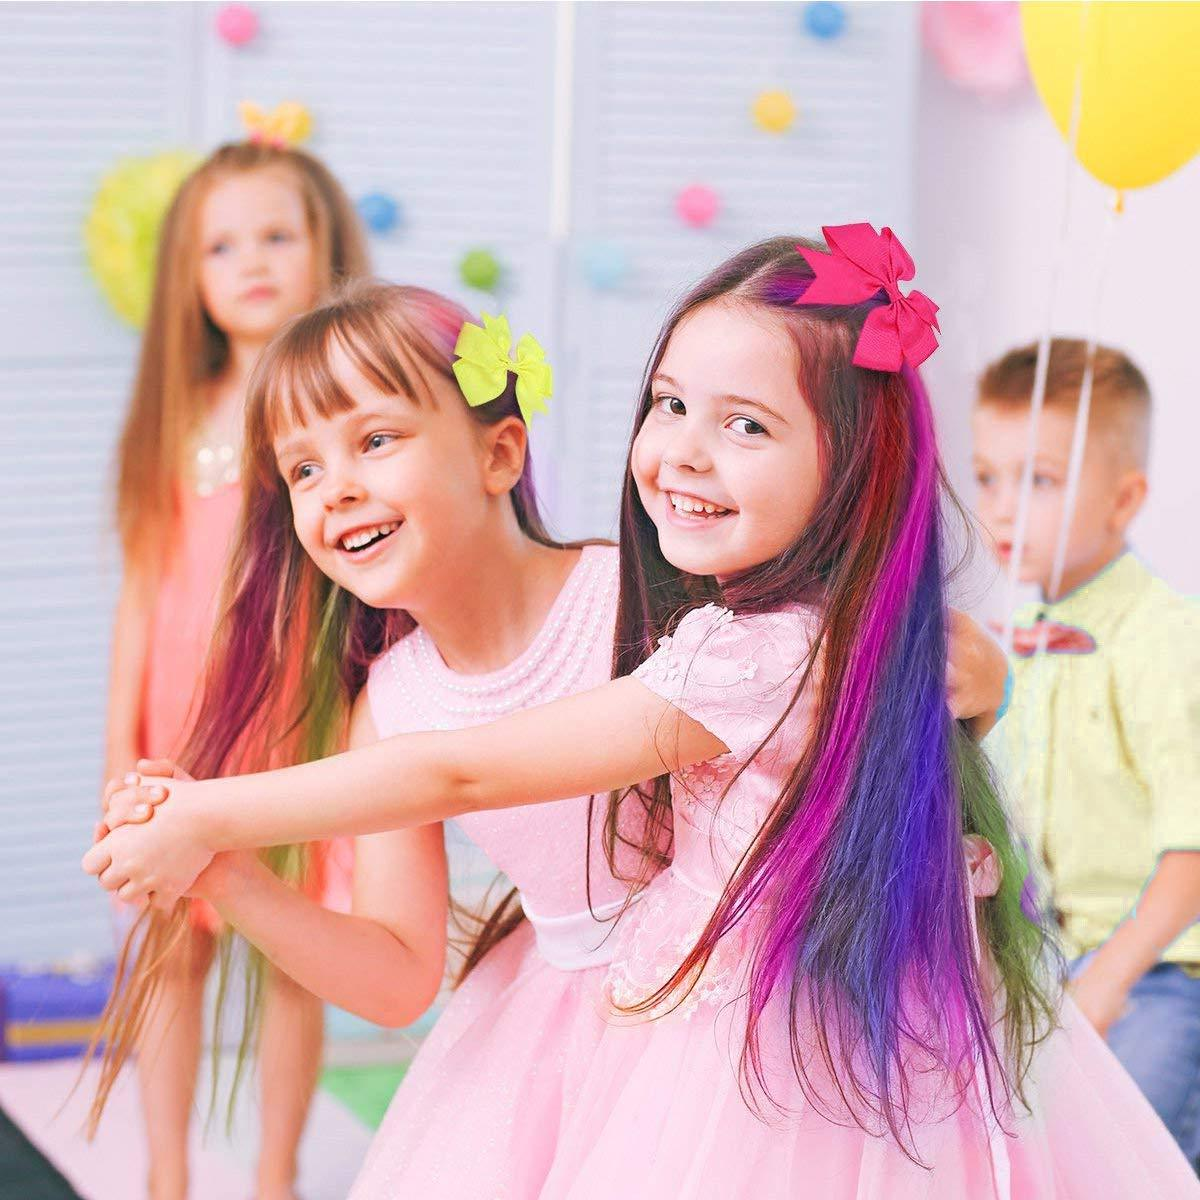 10 Colors Hair Chalk for Girls,Kids Temporary Bright Hair color,,Halloween Christmas Cosplay Parties